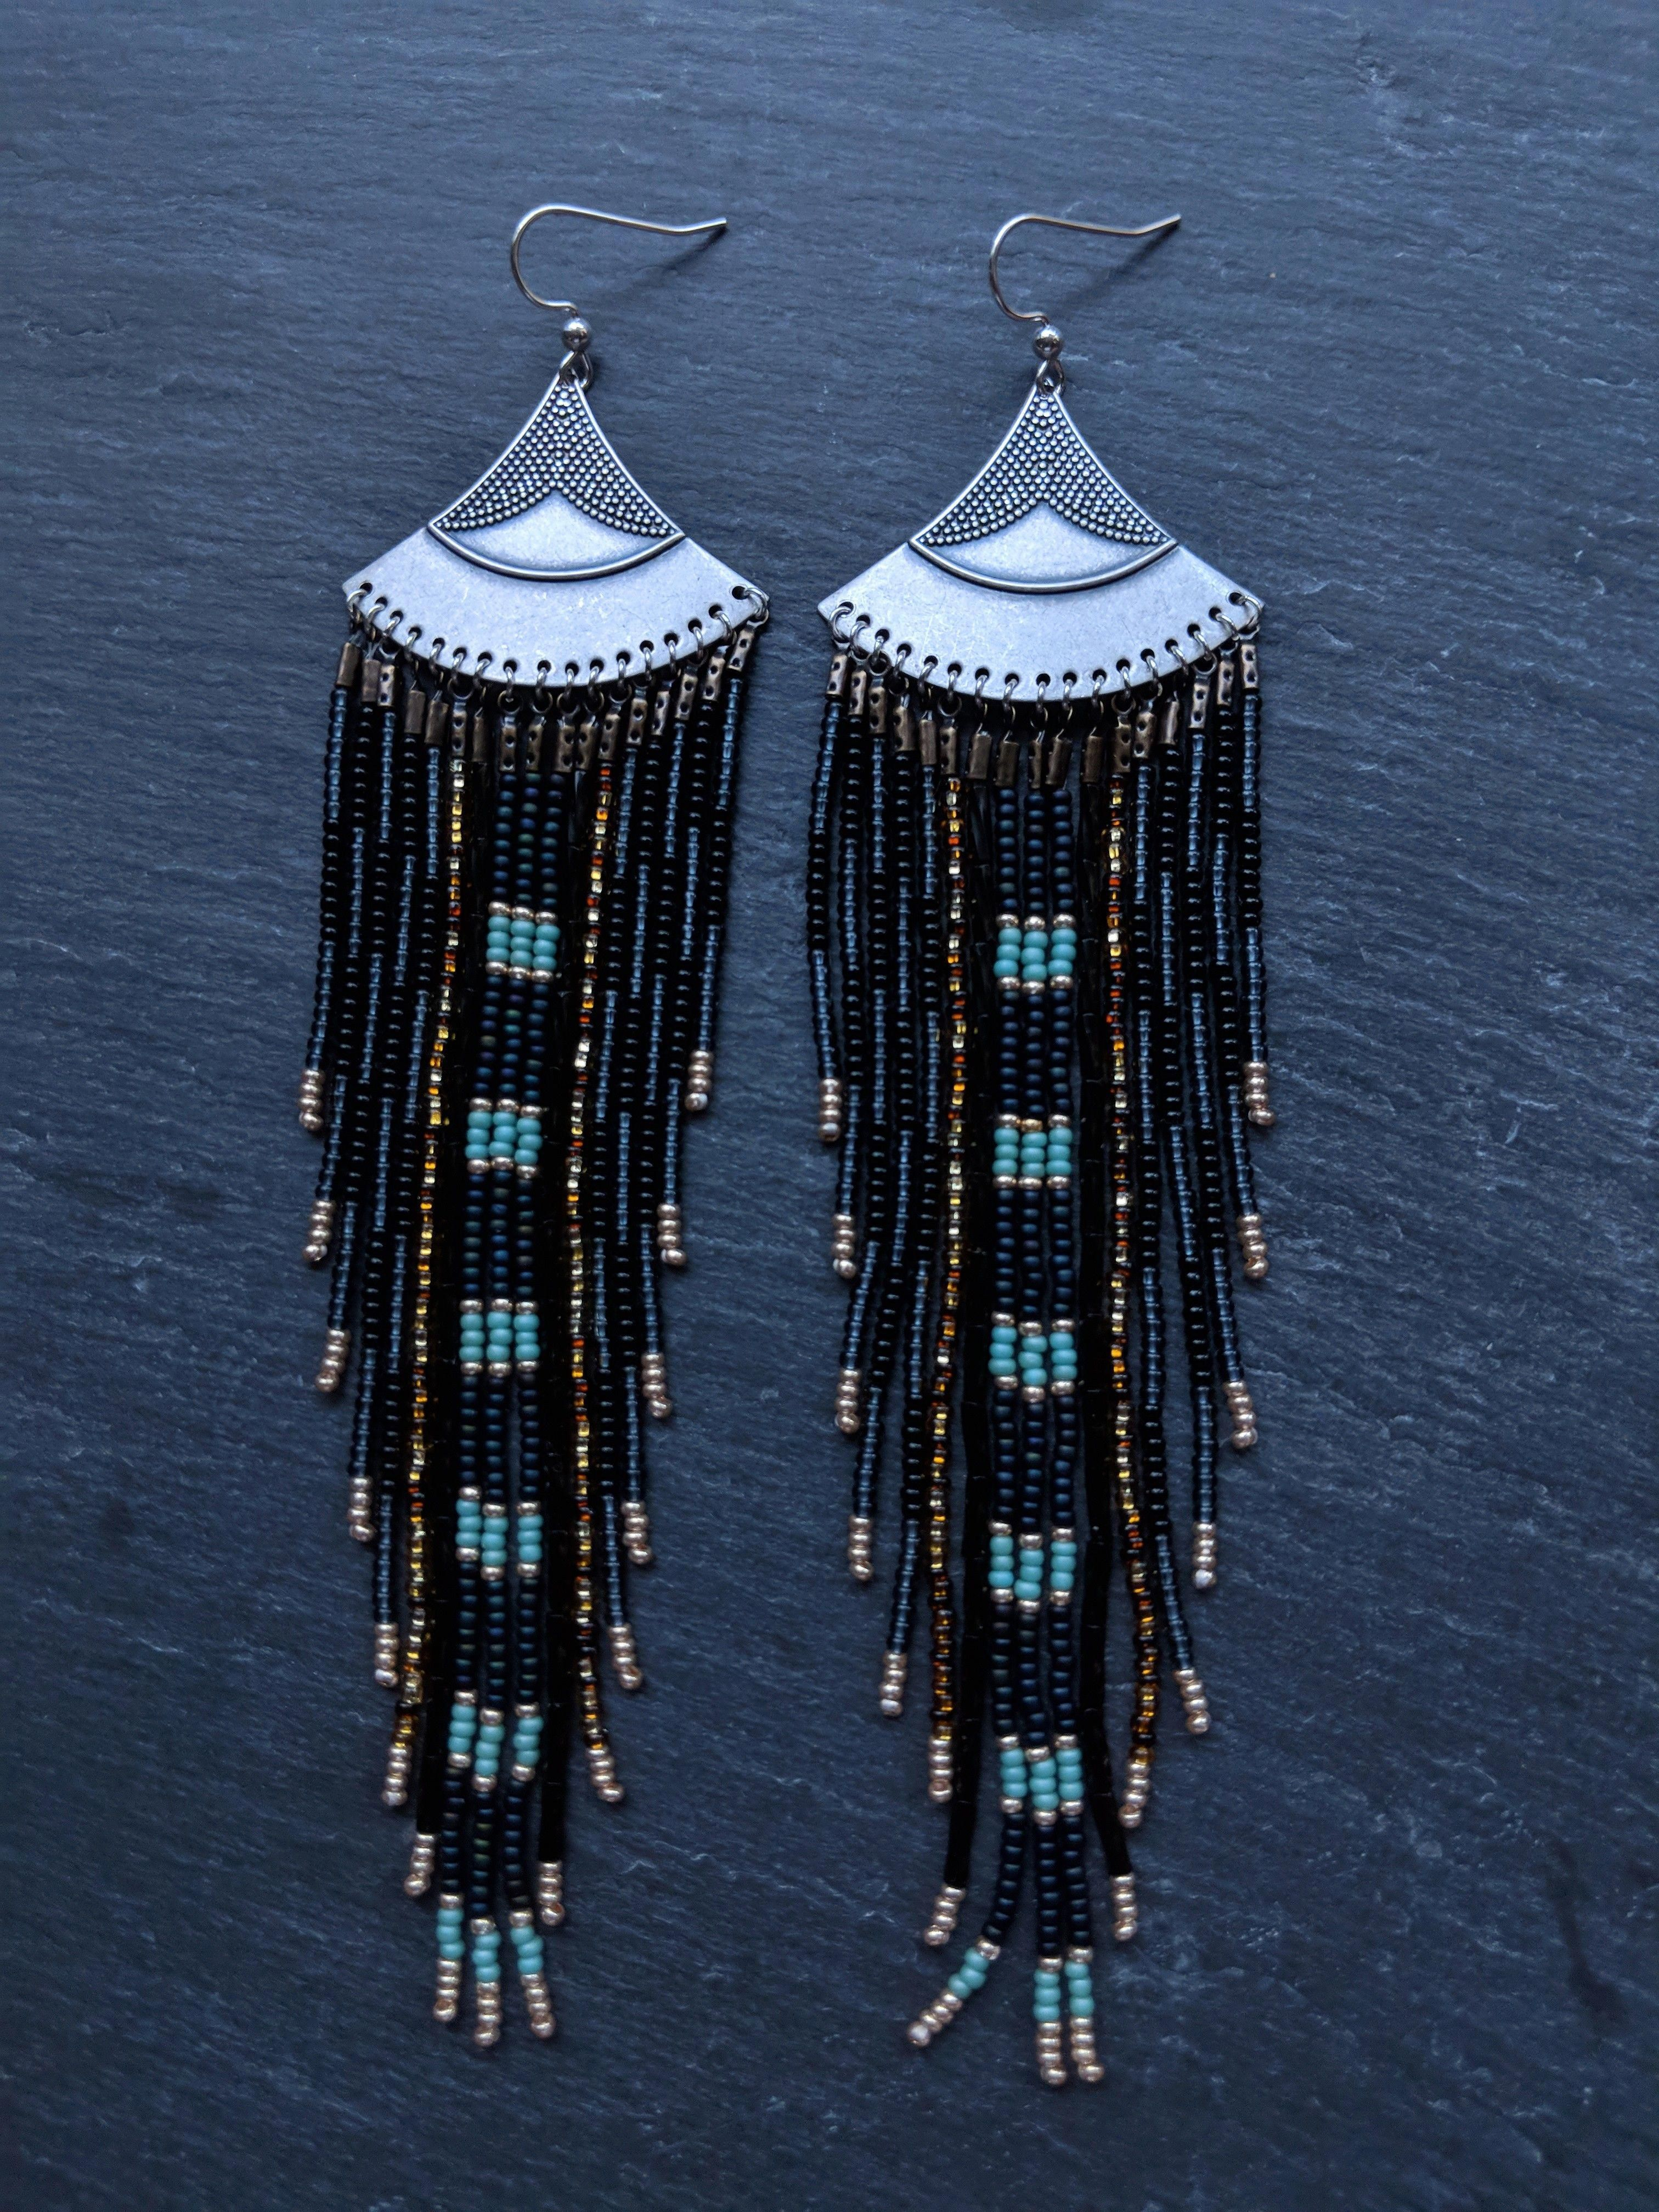 Made With Golden and Blue Miyuki Bead and Handmade Ear wires Blue Handmade Star Earrings